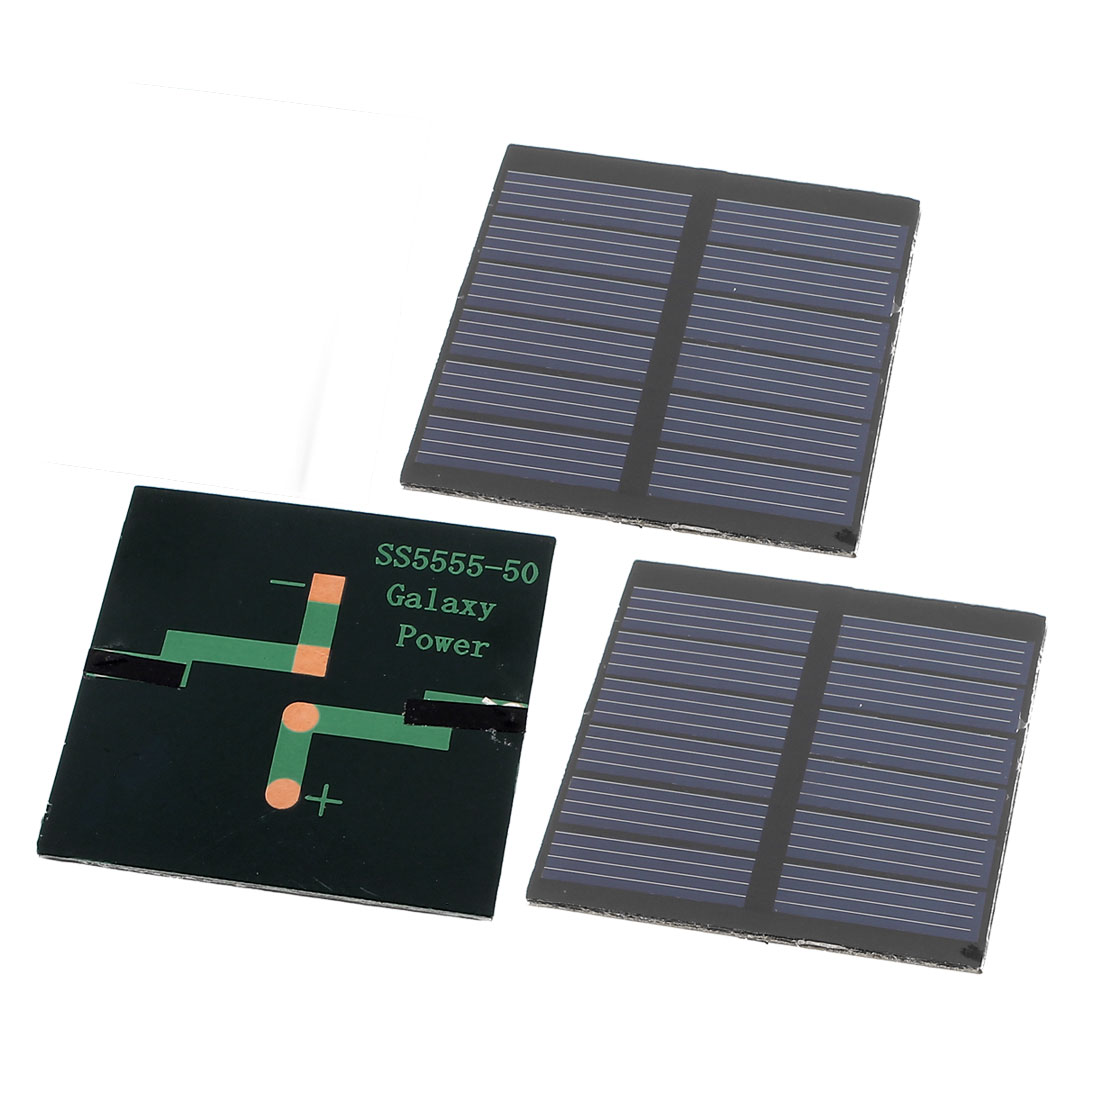 3 Pcs 3V 0.3W DIY Polycrystallinesilicon Solar Panel Power Cell Battery Charger 55mm x 55mm